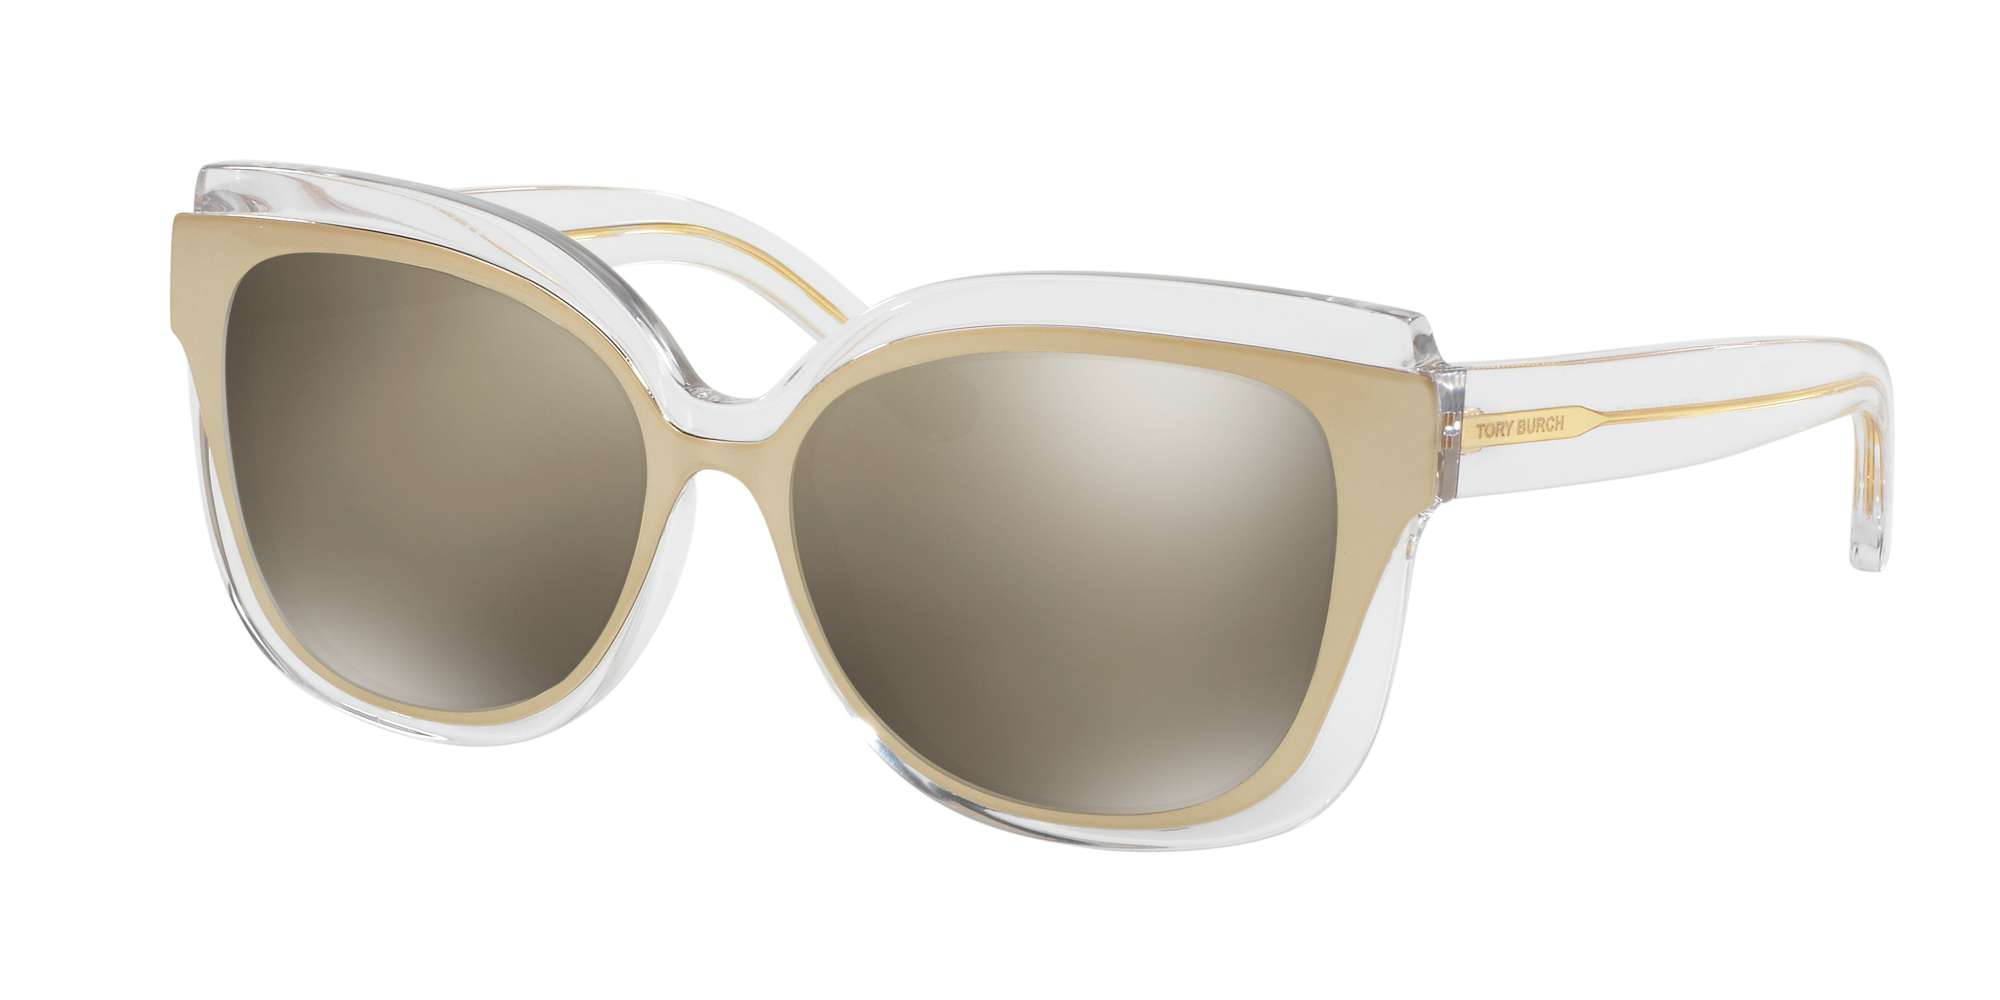 CRYSTAL/GOLD / GOLD FLASH MIRROR lenses